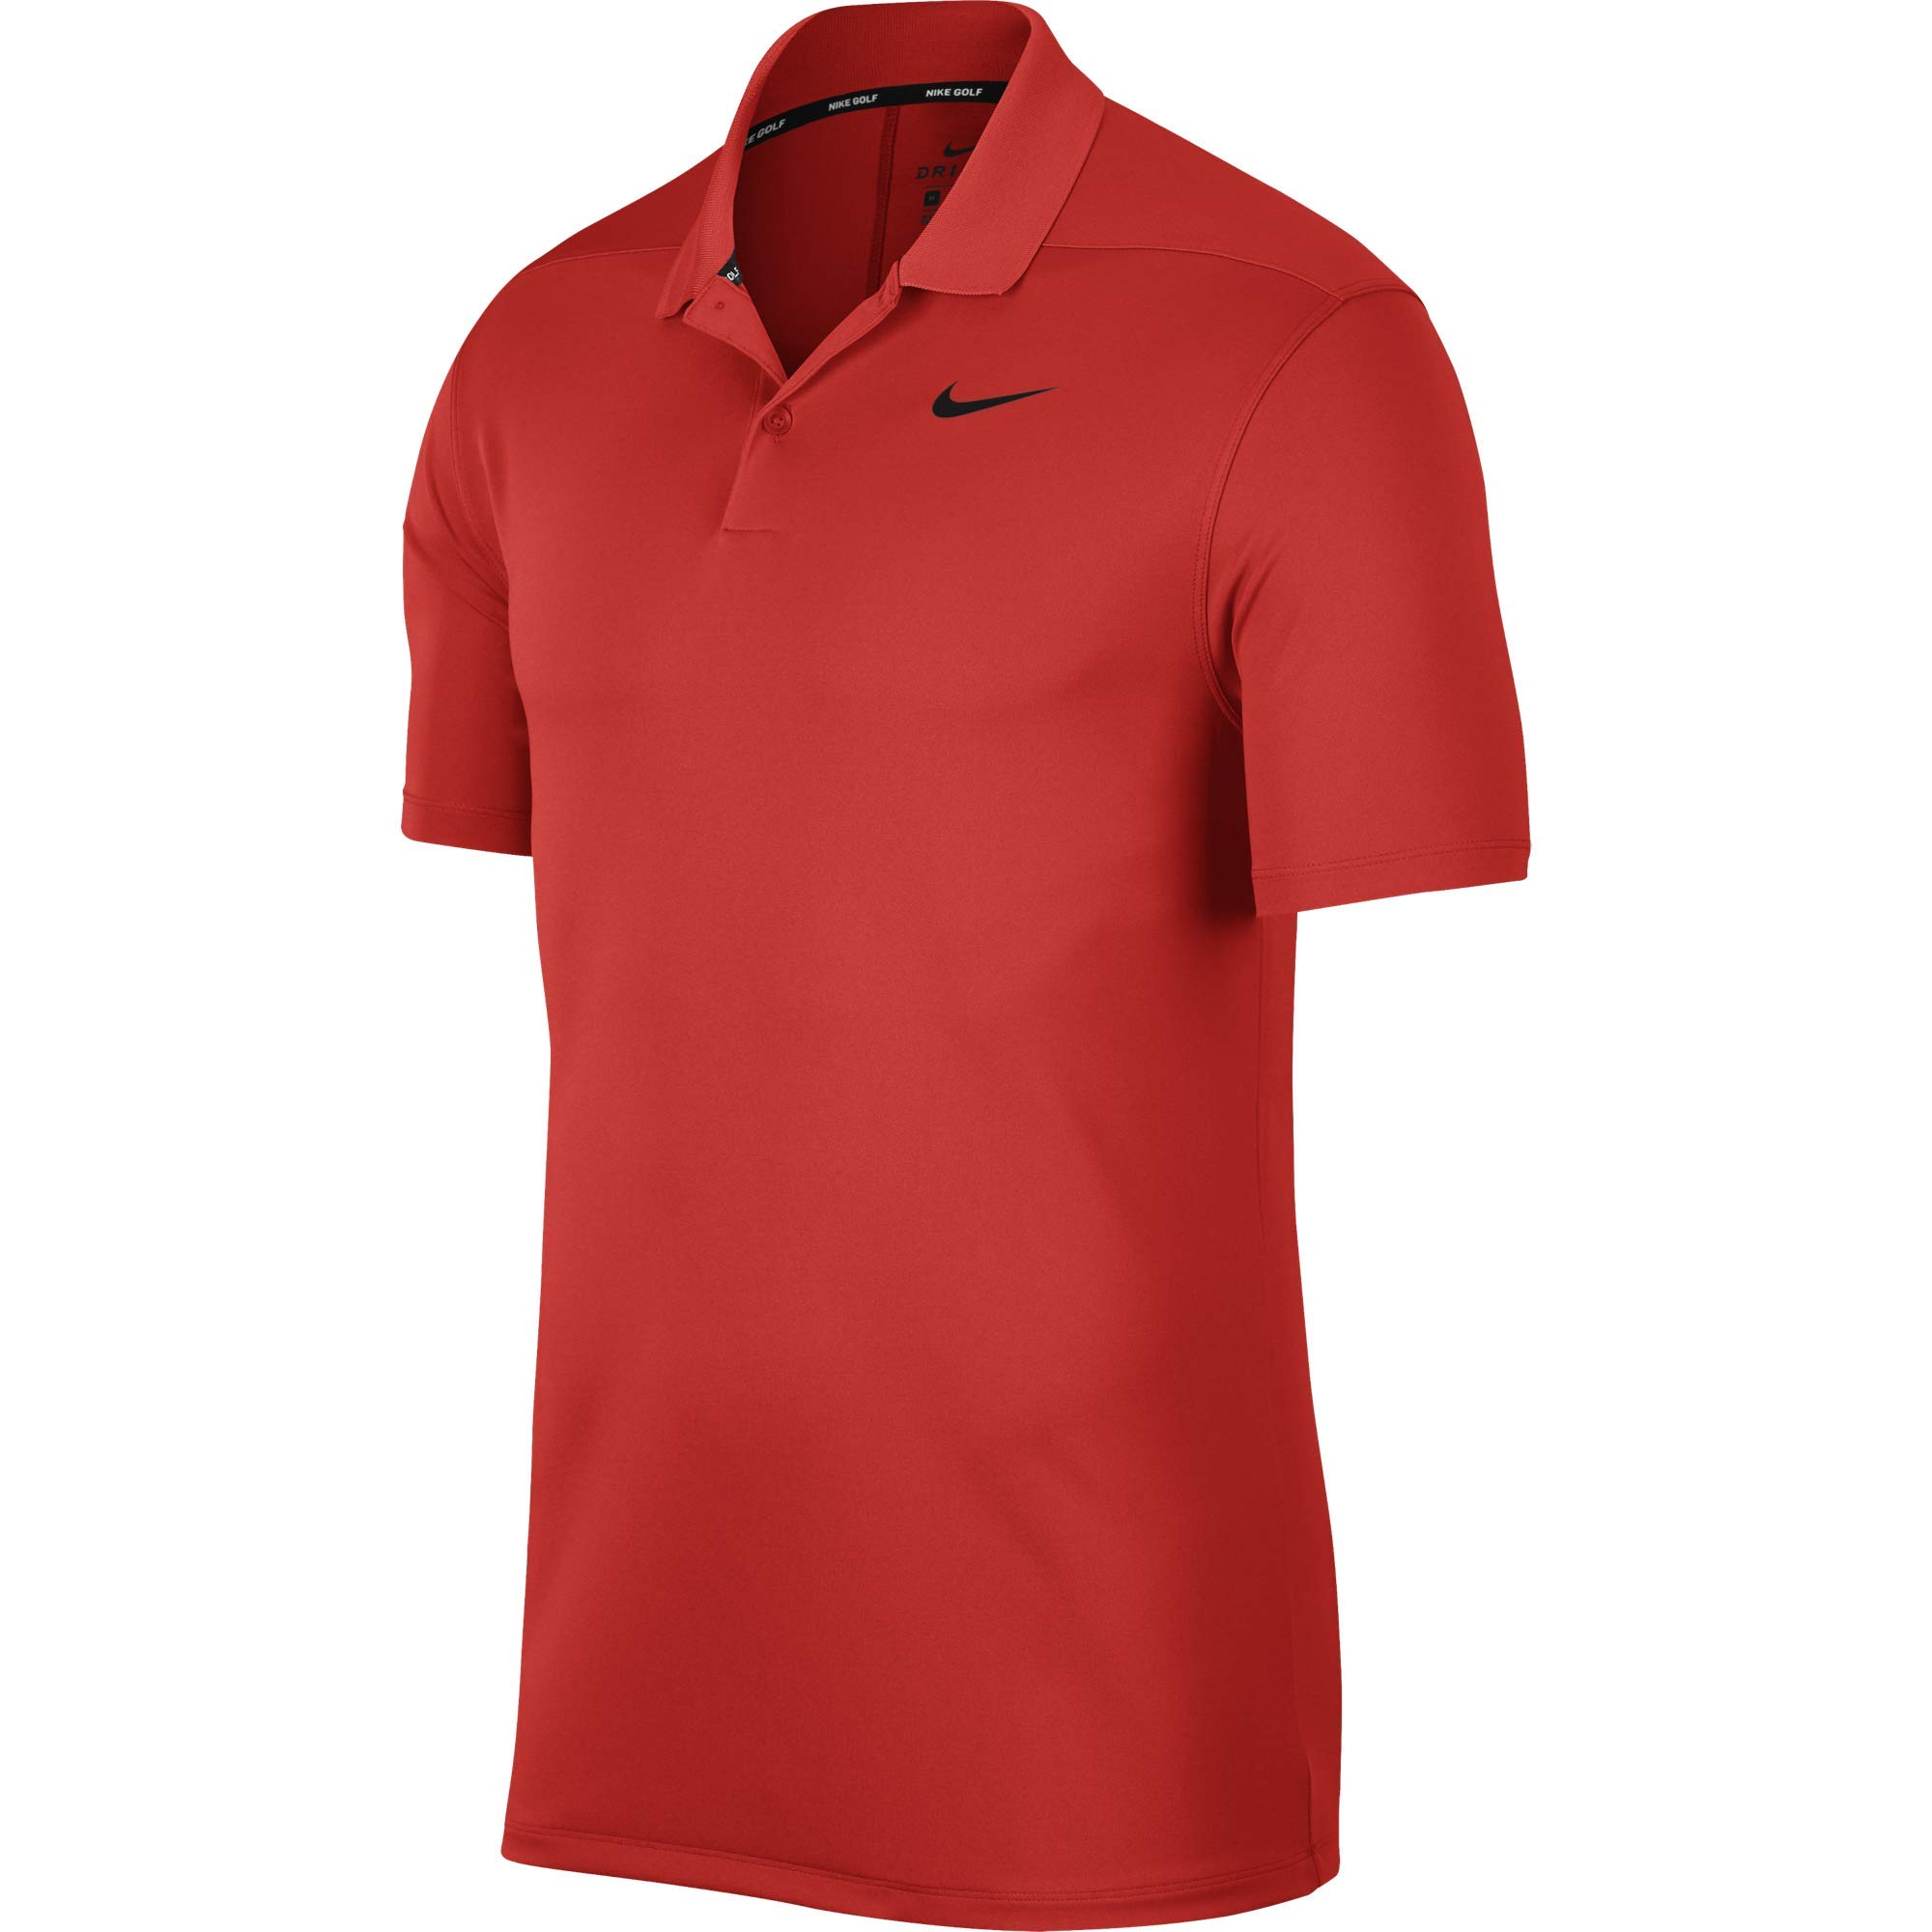 Nike Men's Dry Victory Polo Solid Left Chest, Habanero Red/Black, Large by Nike